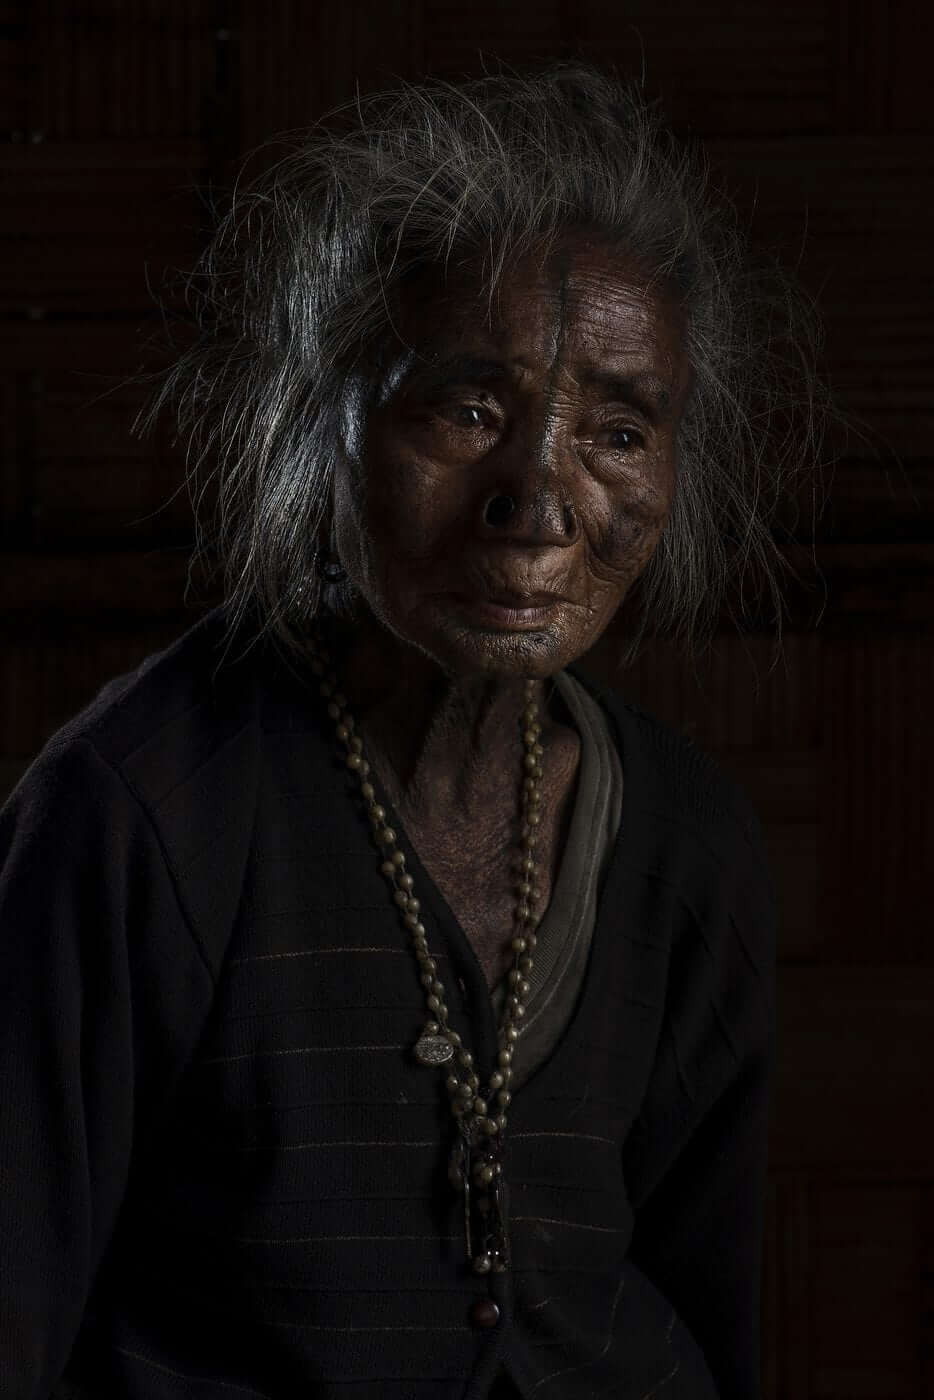 """Kago Yapii, 70's When Yapii was five or six she had her modifications done. She says, """"I really wanted to have this done and I had no fear at all"""""""